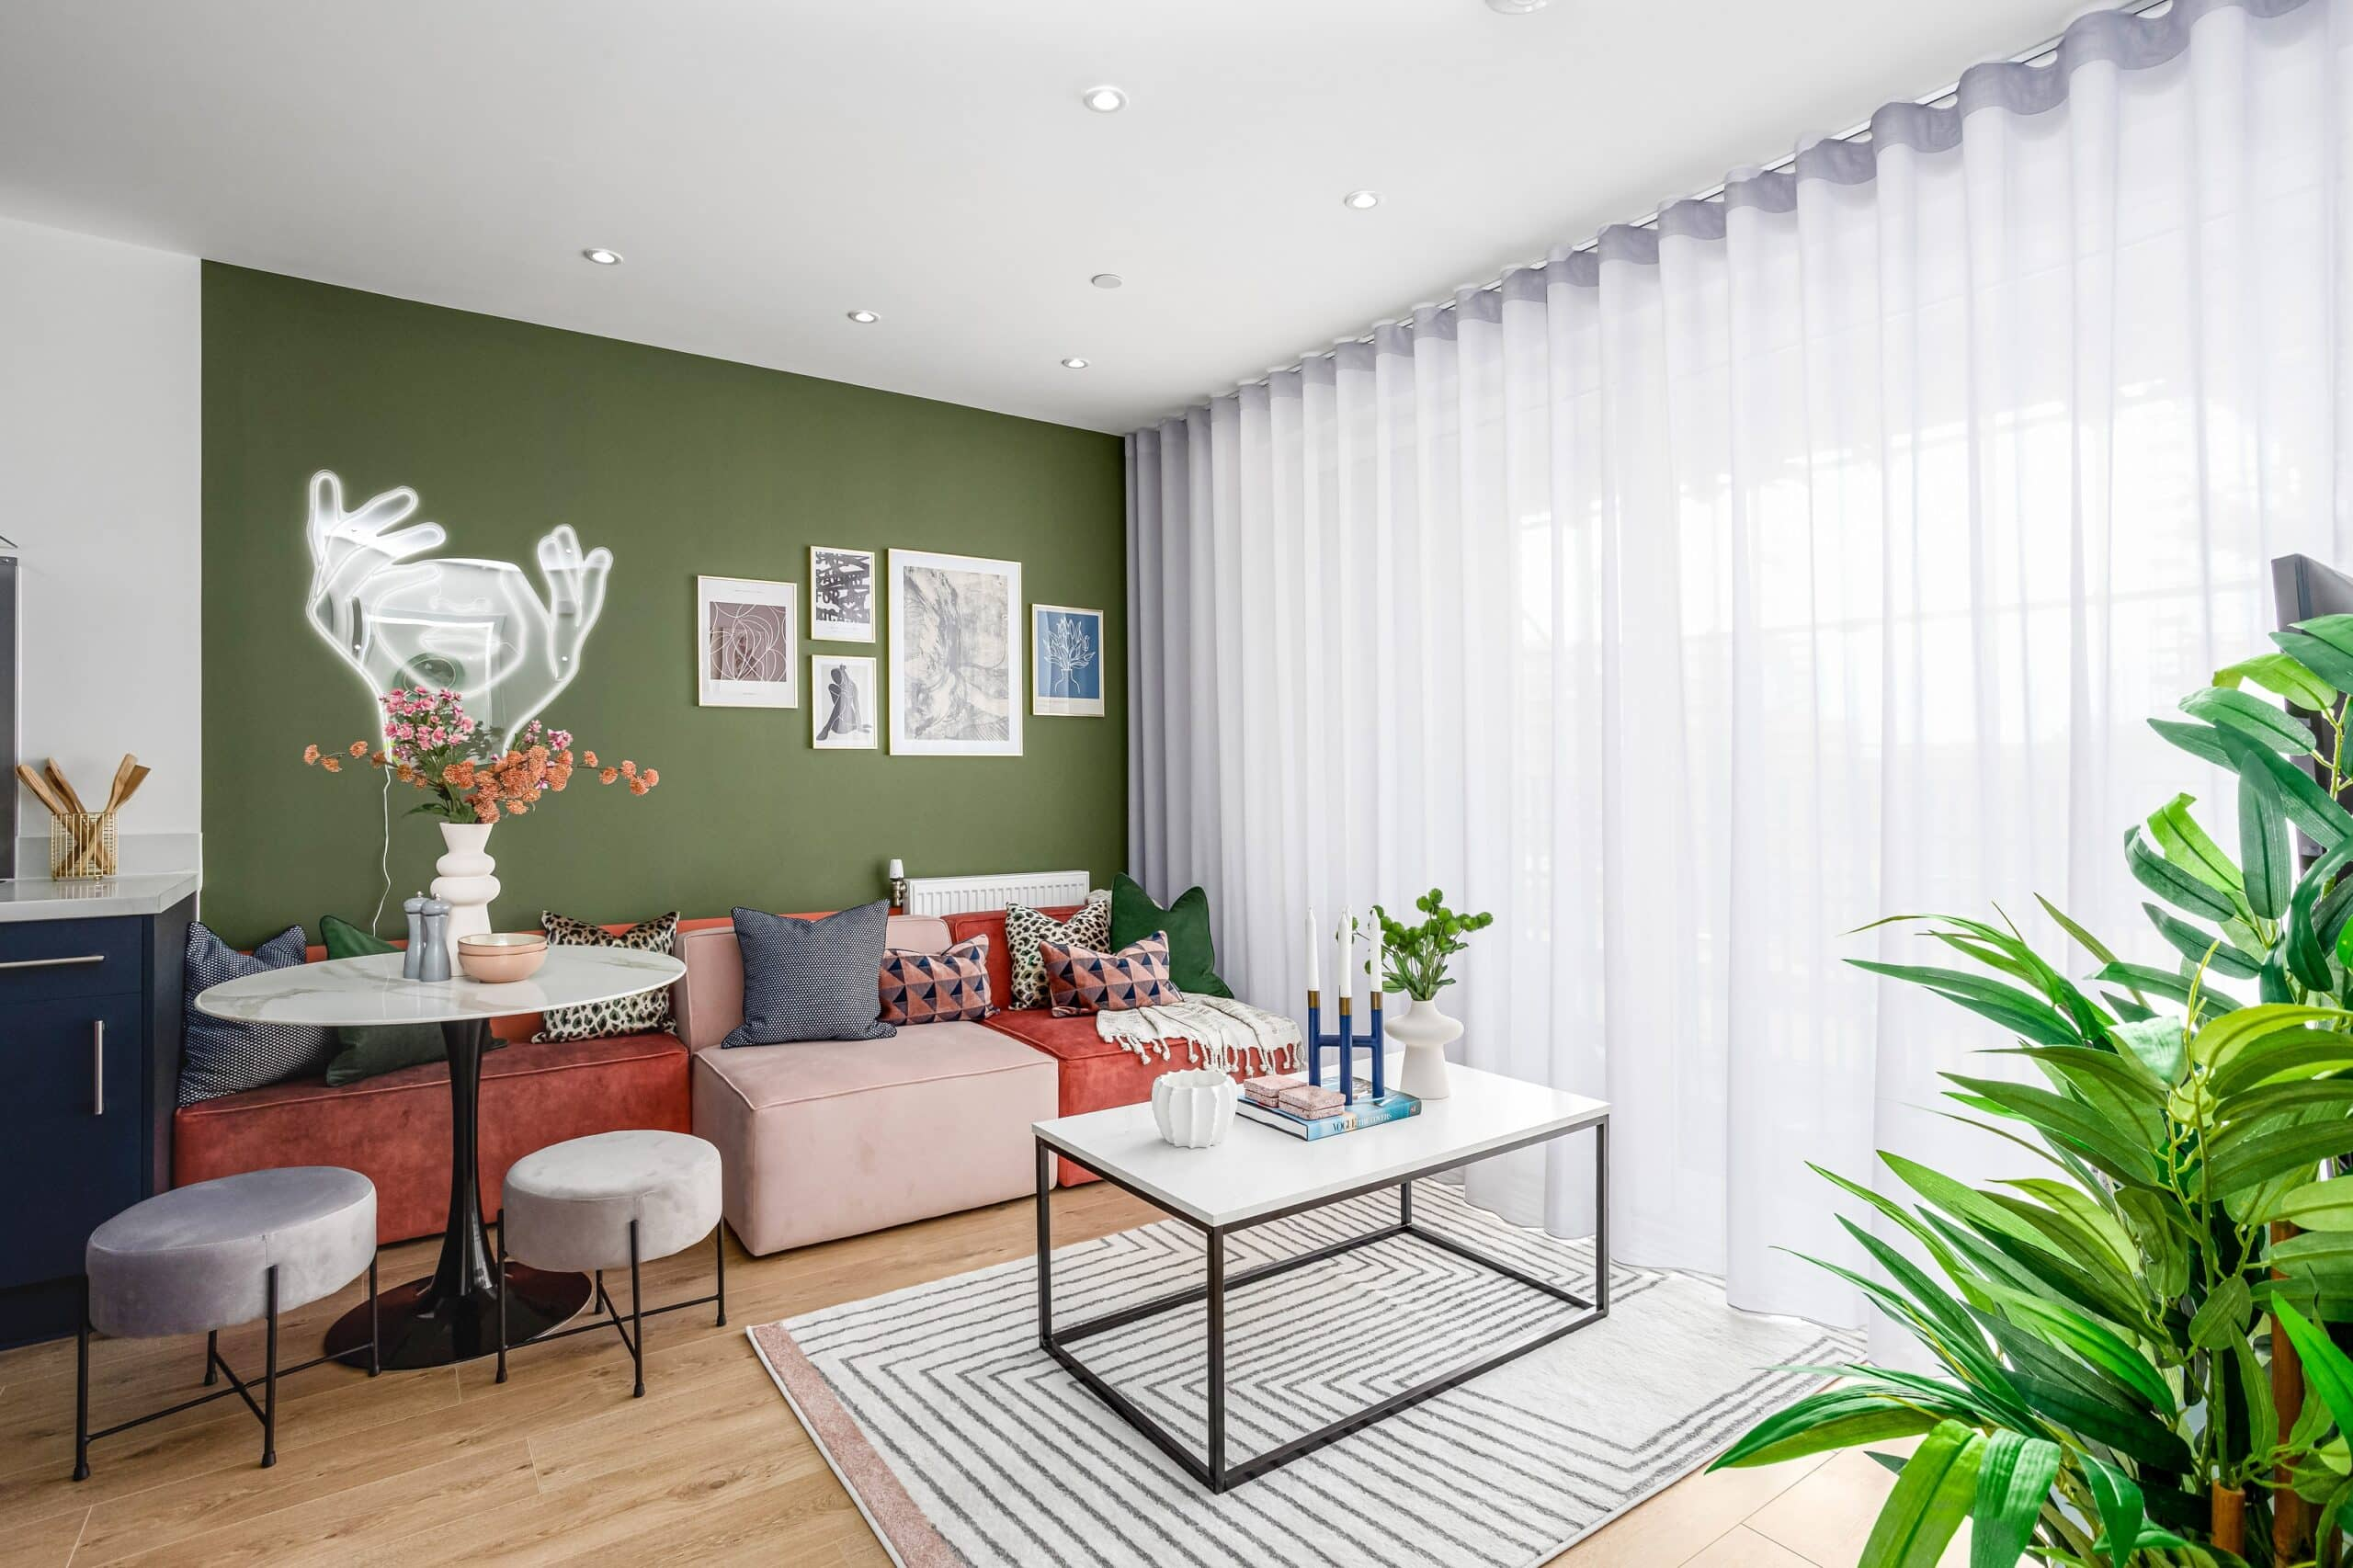 Internal photography of L&Q at Beam Park - Shared Ownership homes available on Share to Buy